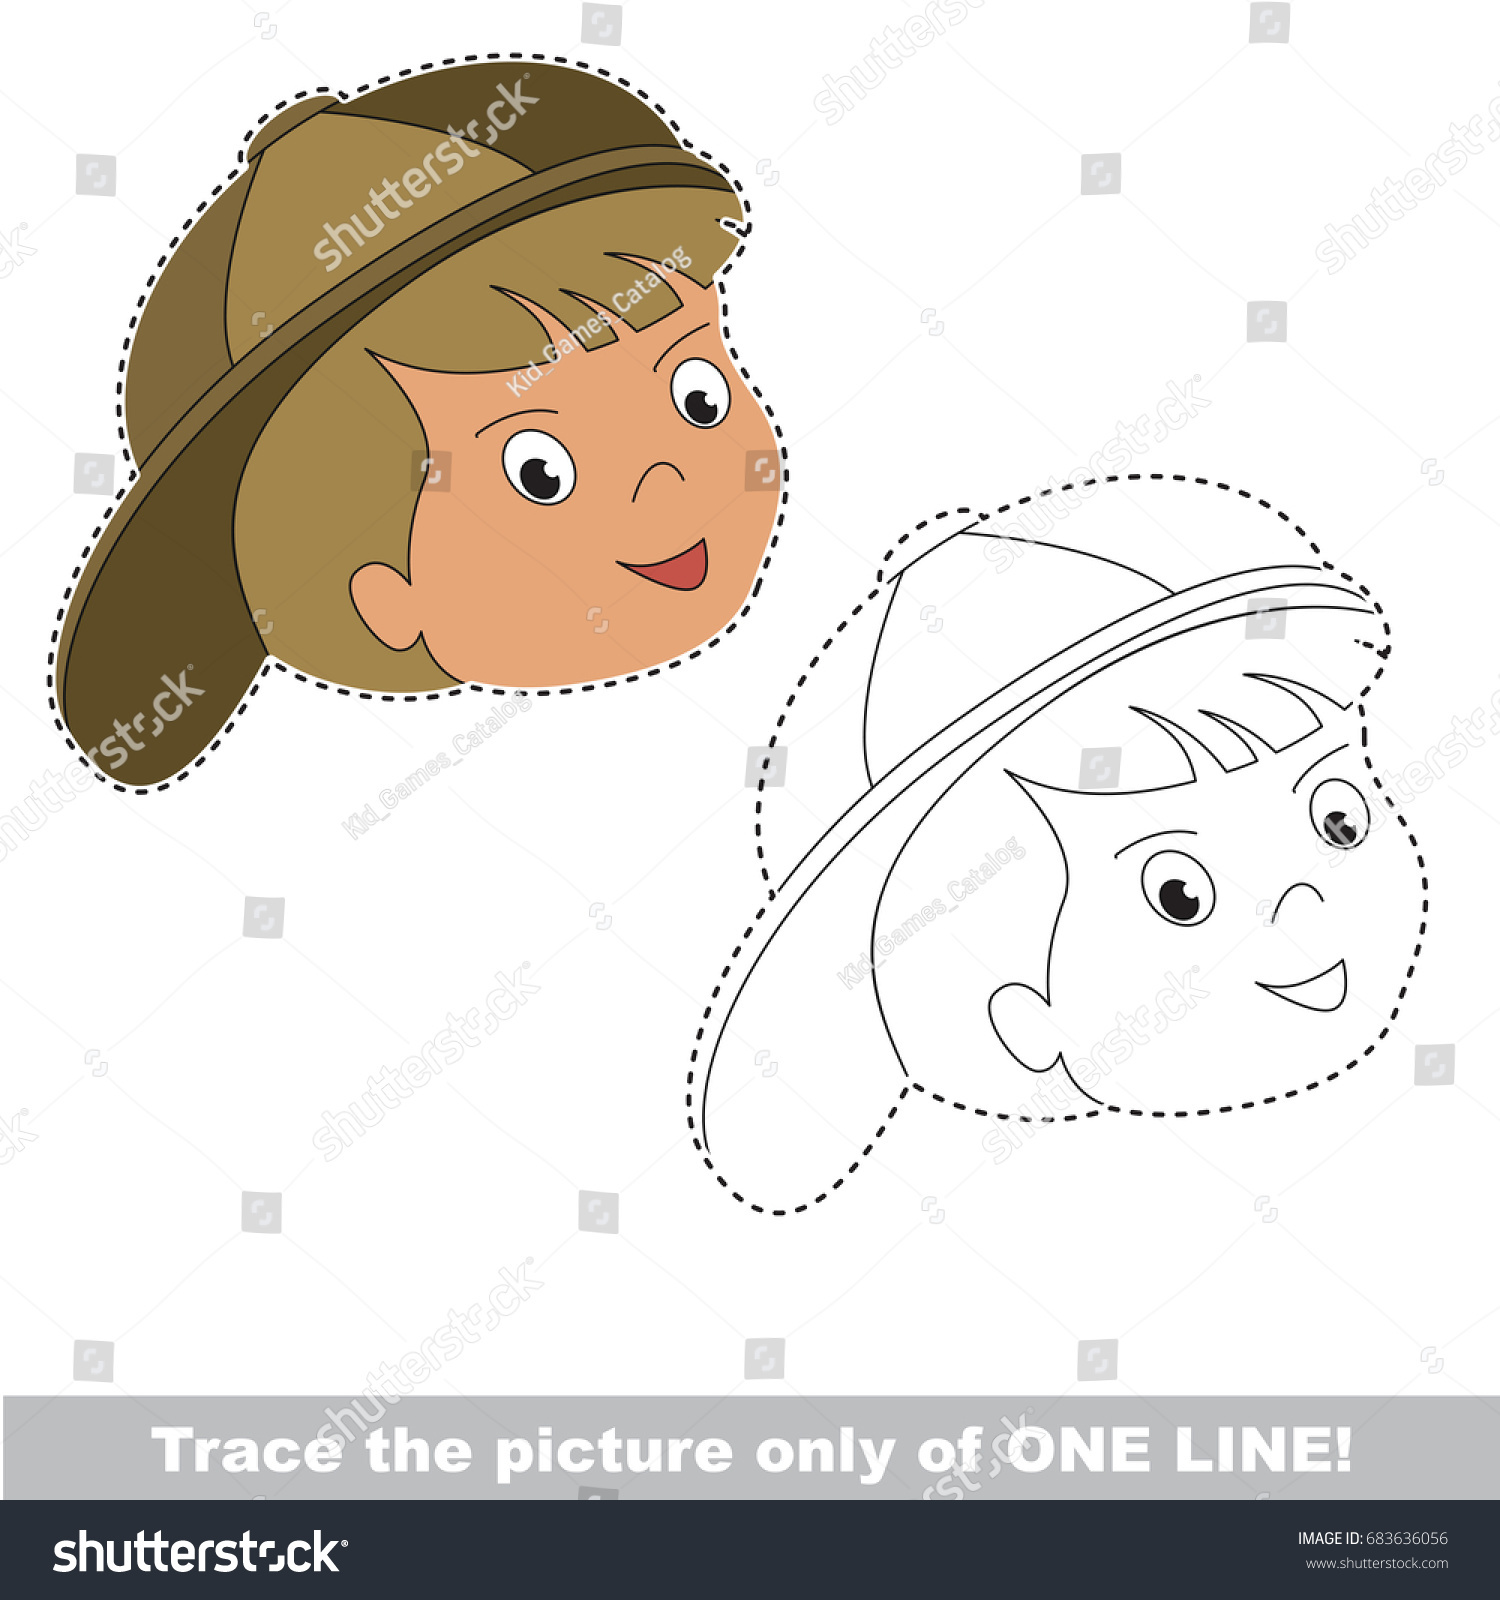 Boy Face Funny Be Traced Only Stock Vector 683636056 - Shutterstock